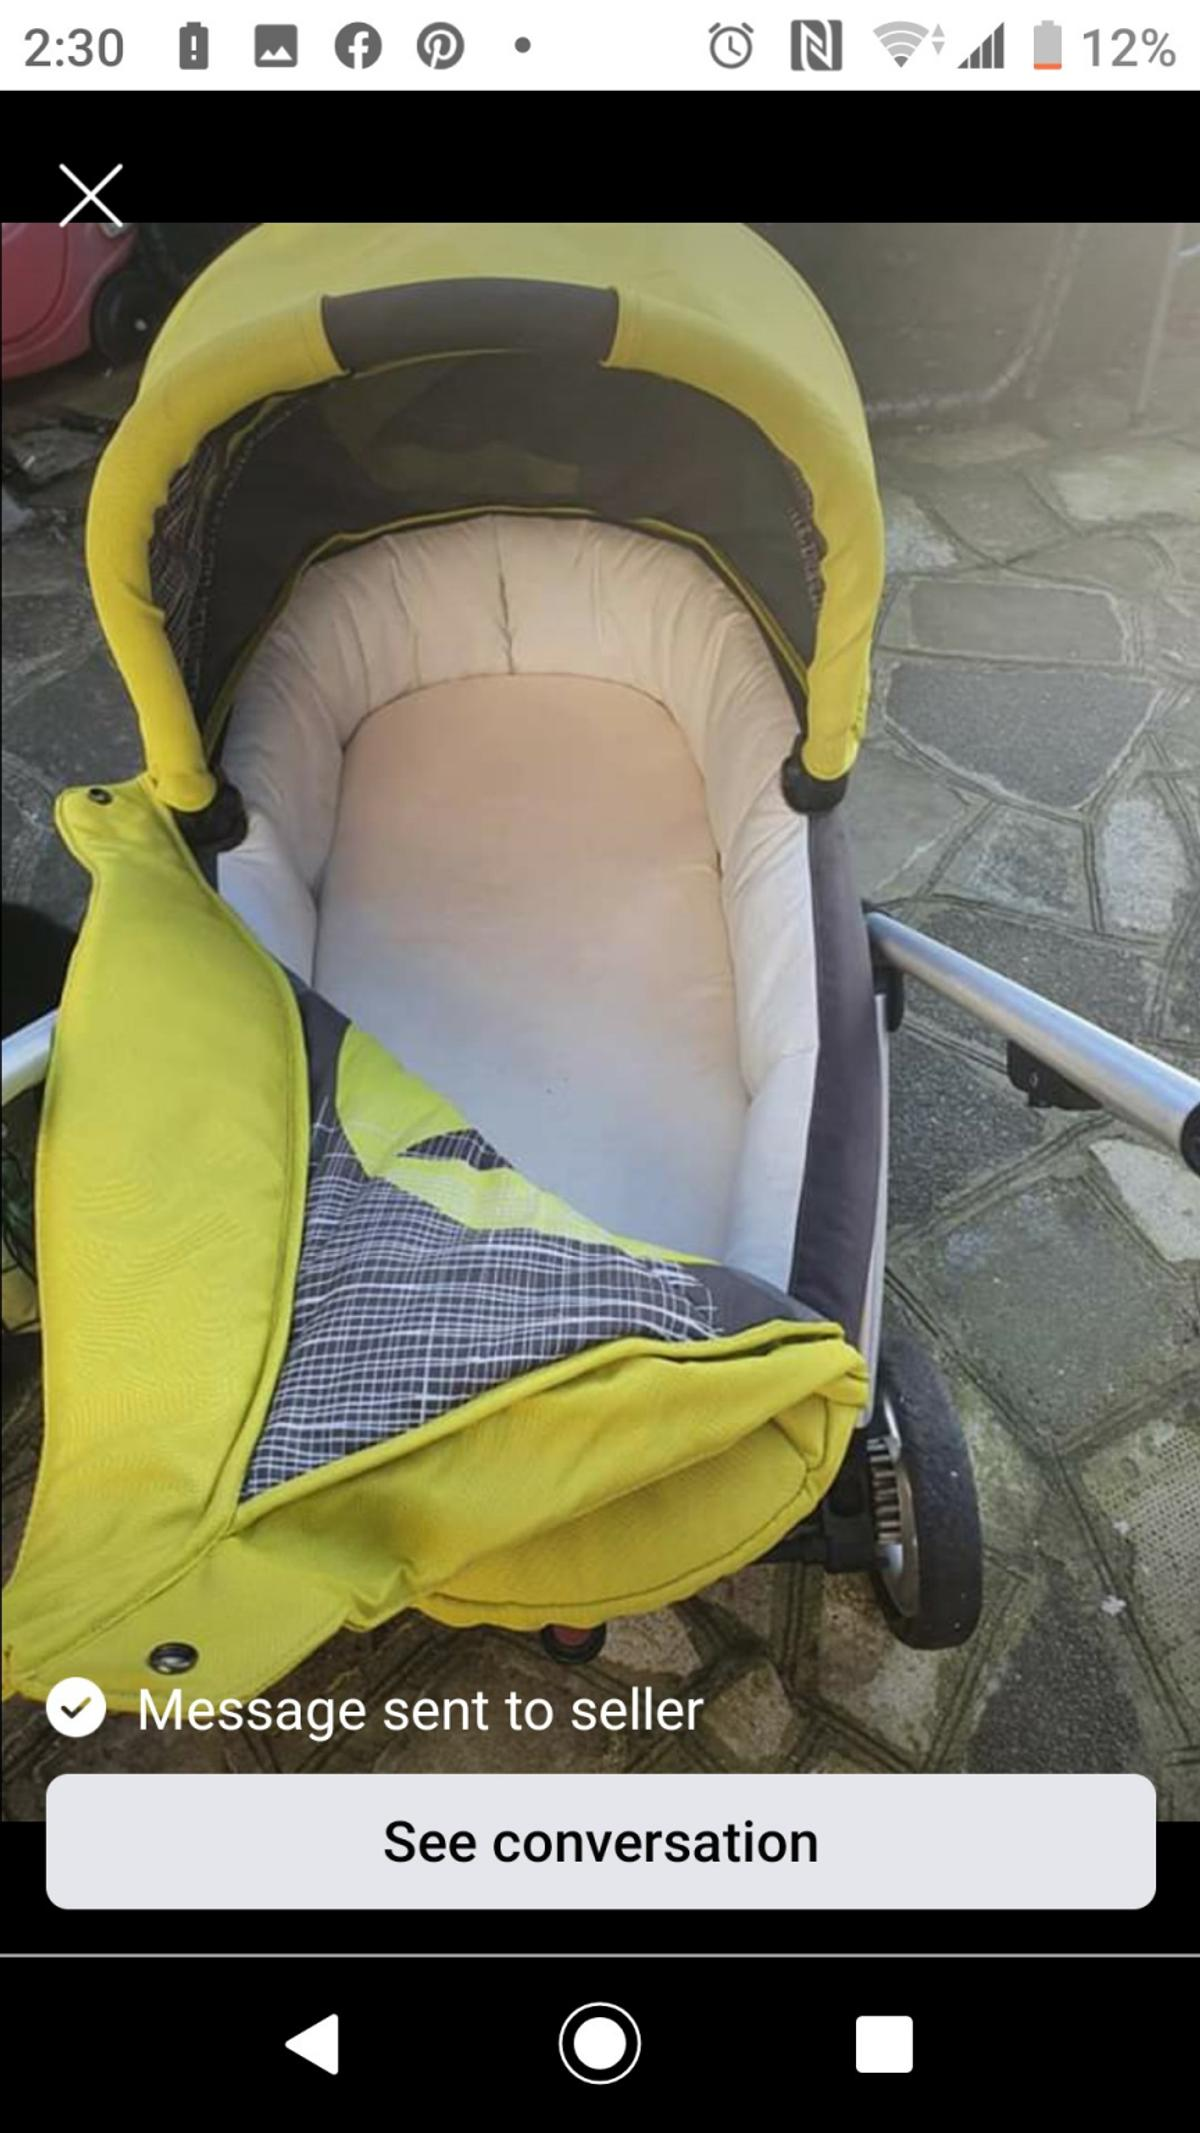 Lime green pram/pushchair. In good condition Comes with carry cot, raincover and pushchair (as seen in the picture) From Mamma and Pappas Collection en1 Enfield £70 or best offer